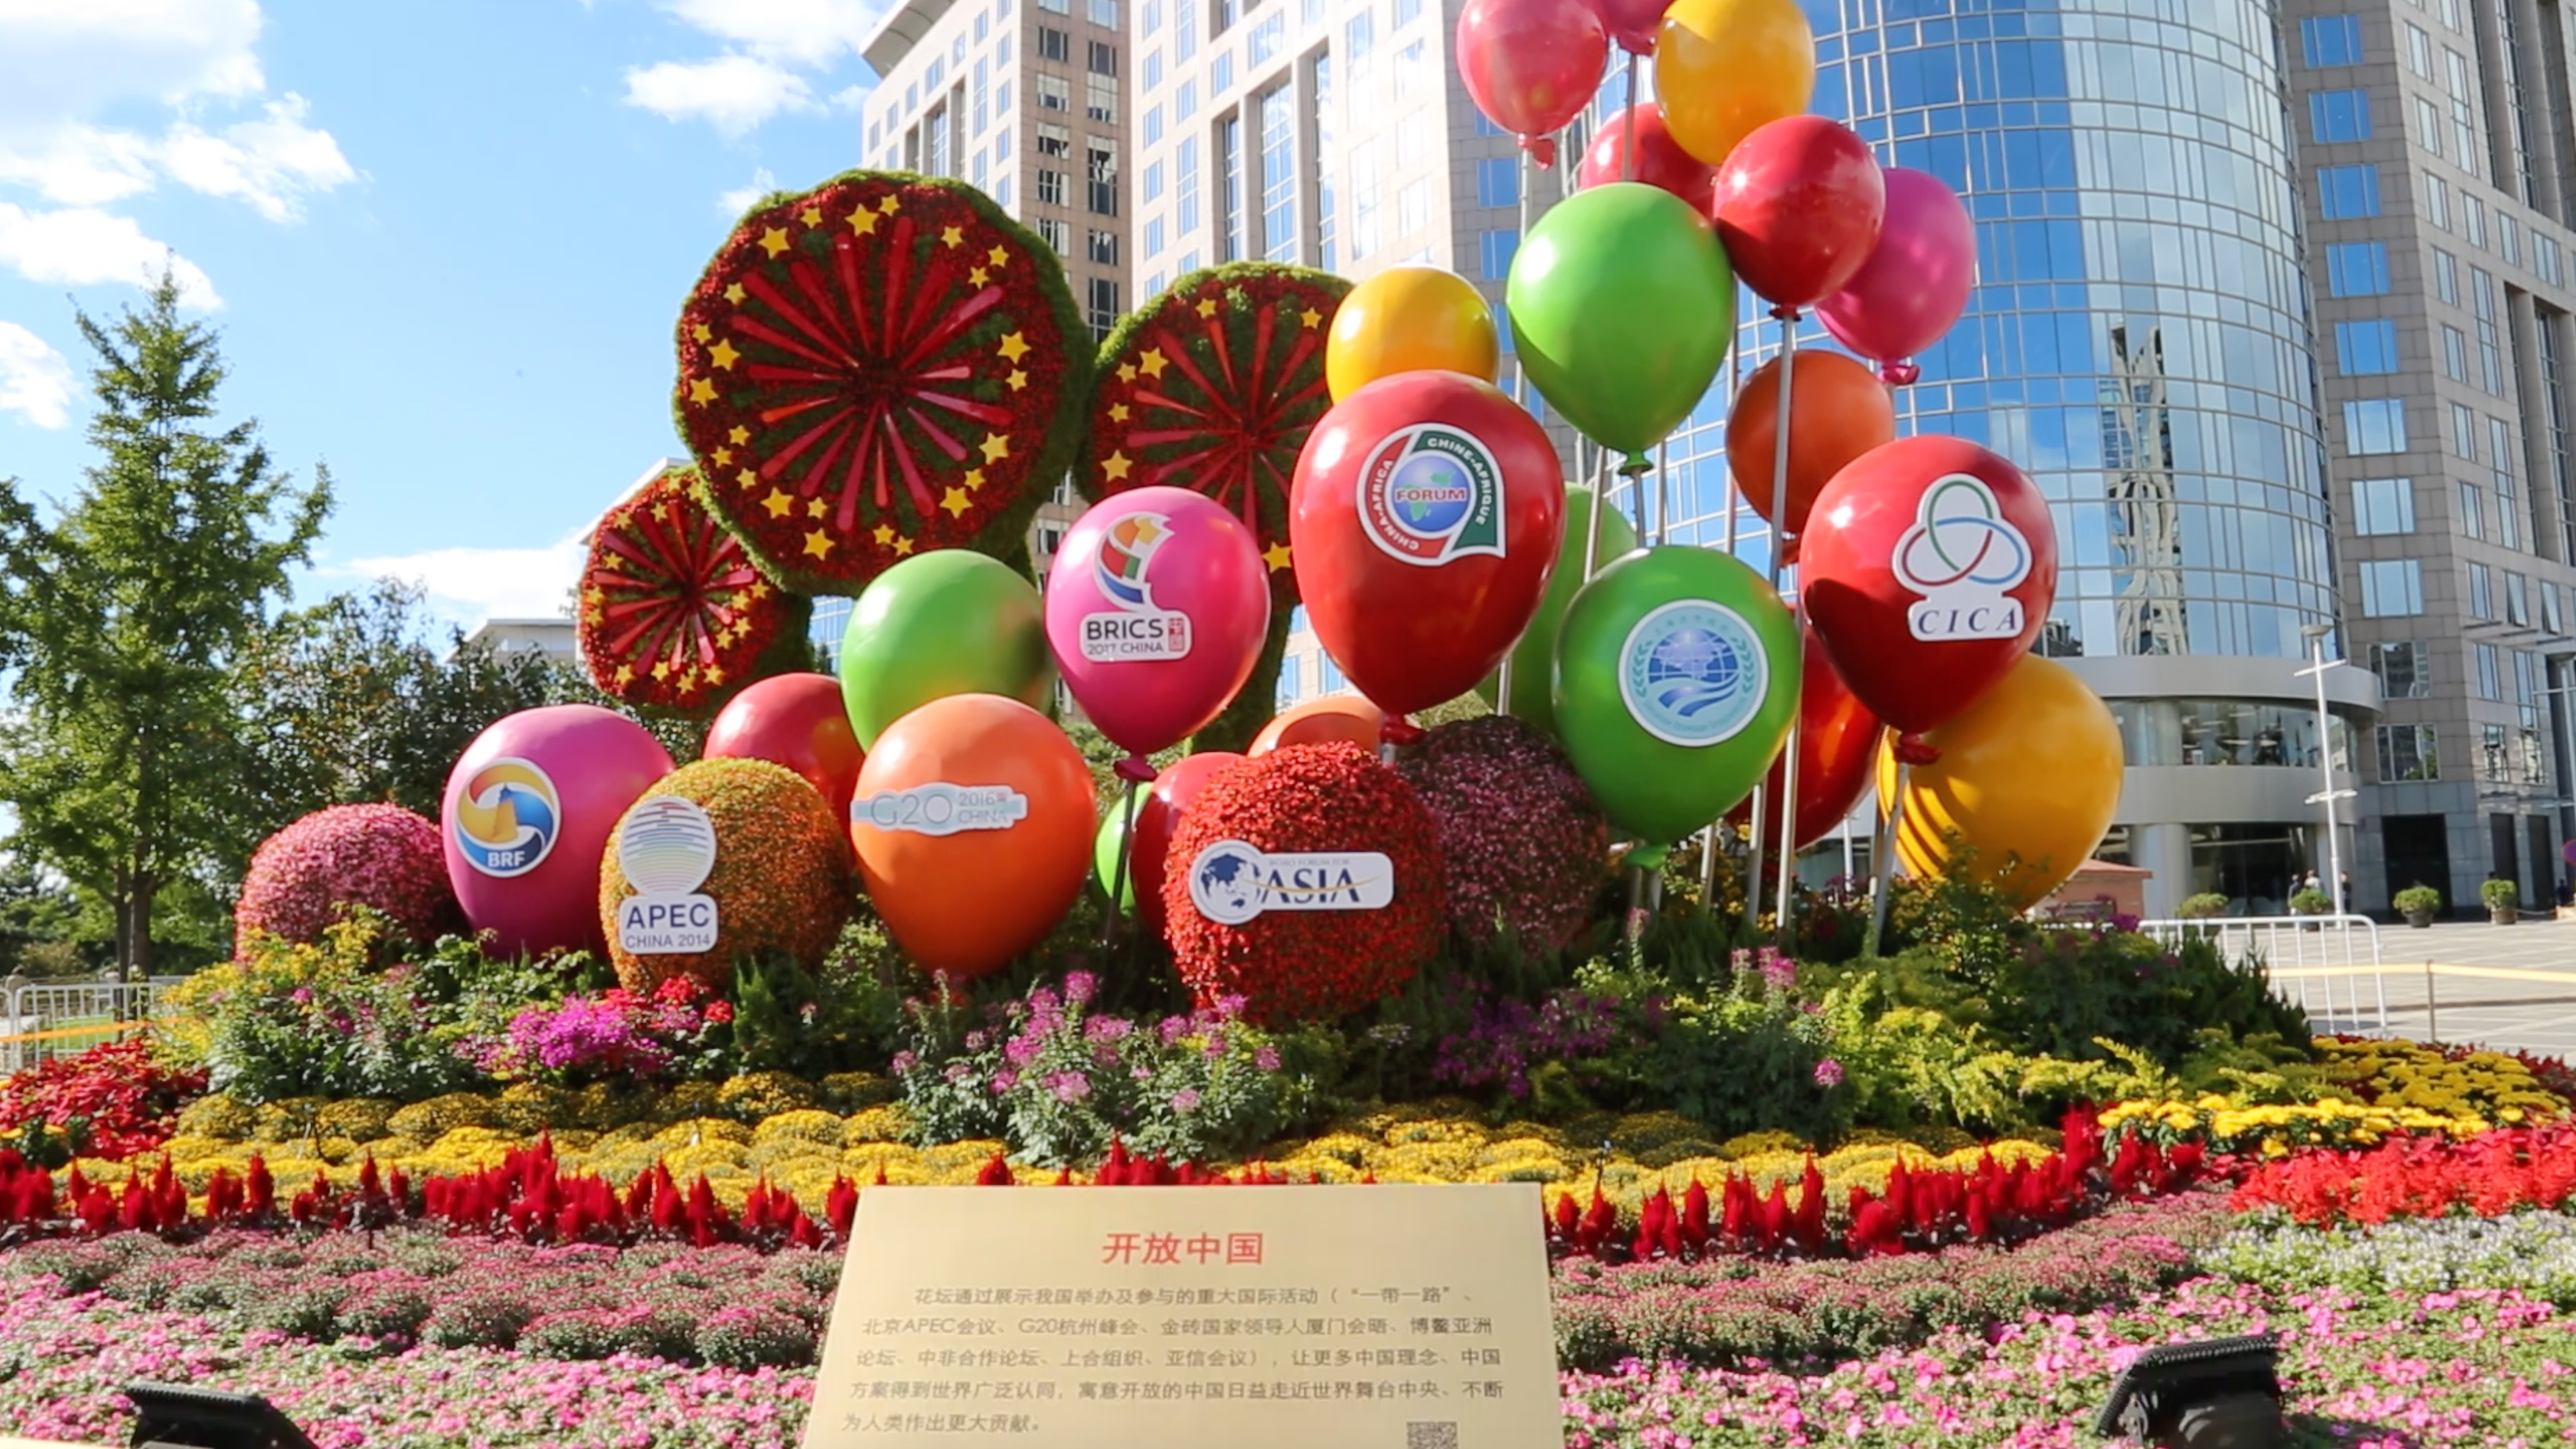 National Day blooms like flowers